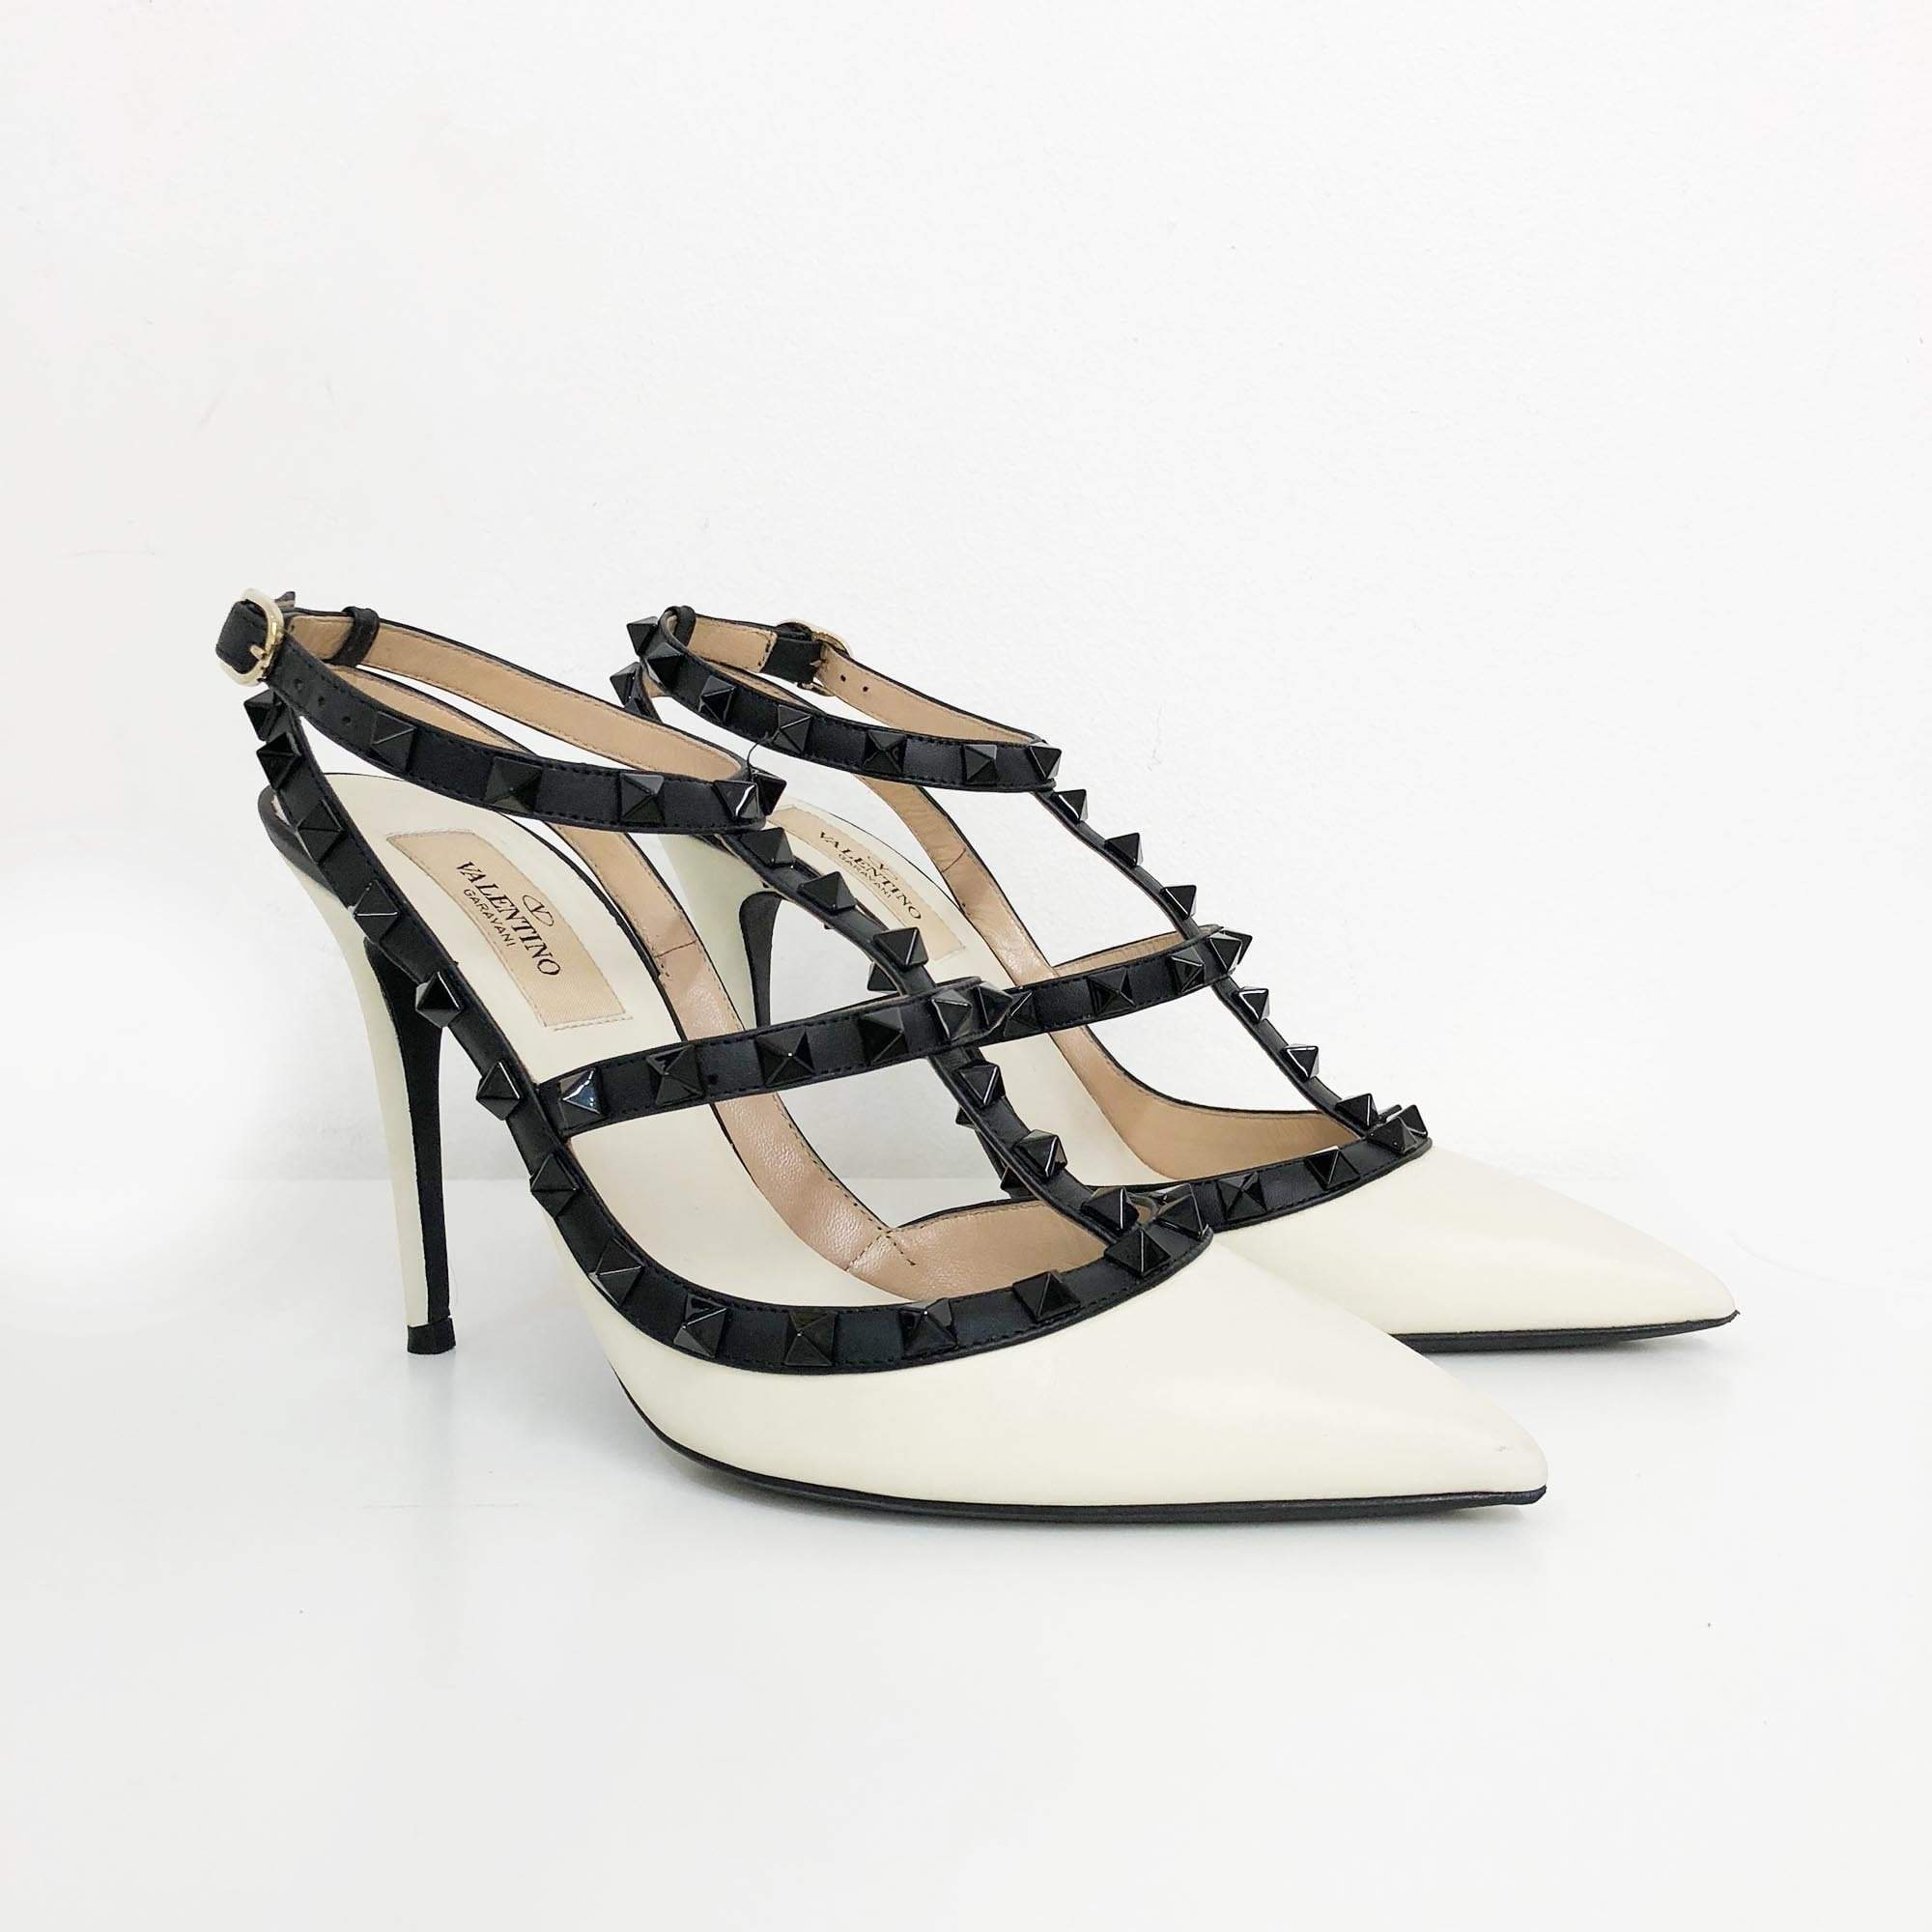 Valentino Garavani Rockstud Black and White Pumps